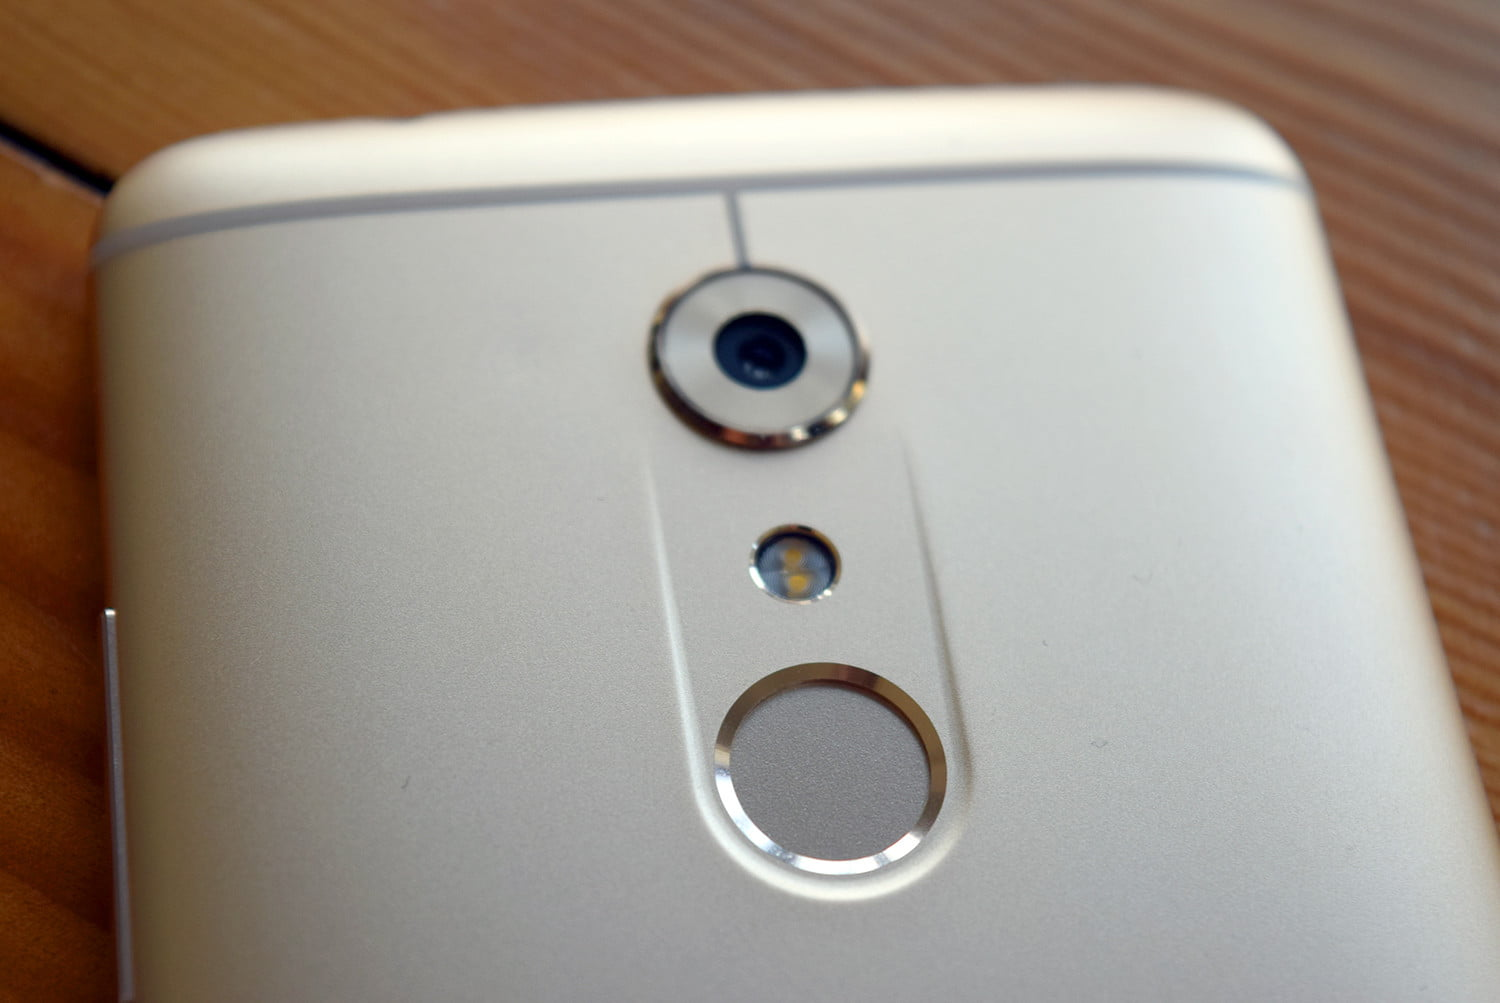 The Axon 7 Is Running Close To Stock Android 6 Marshmallow